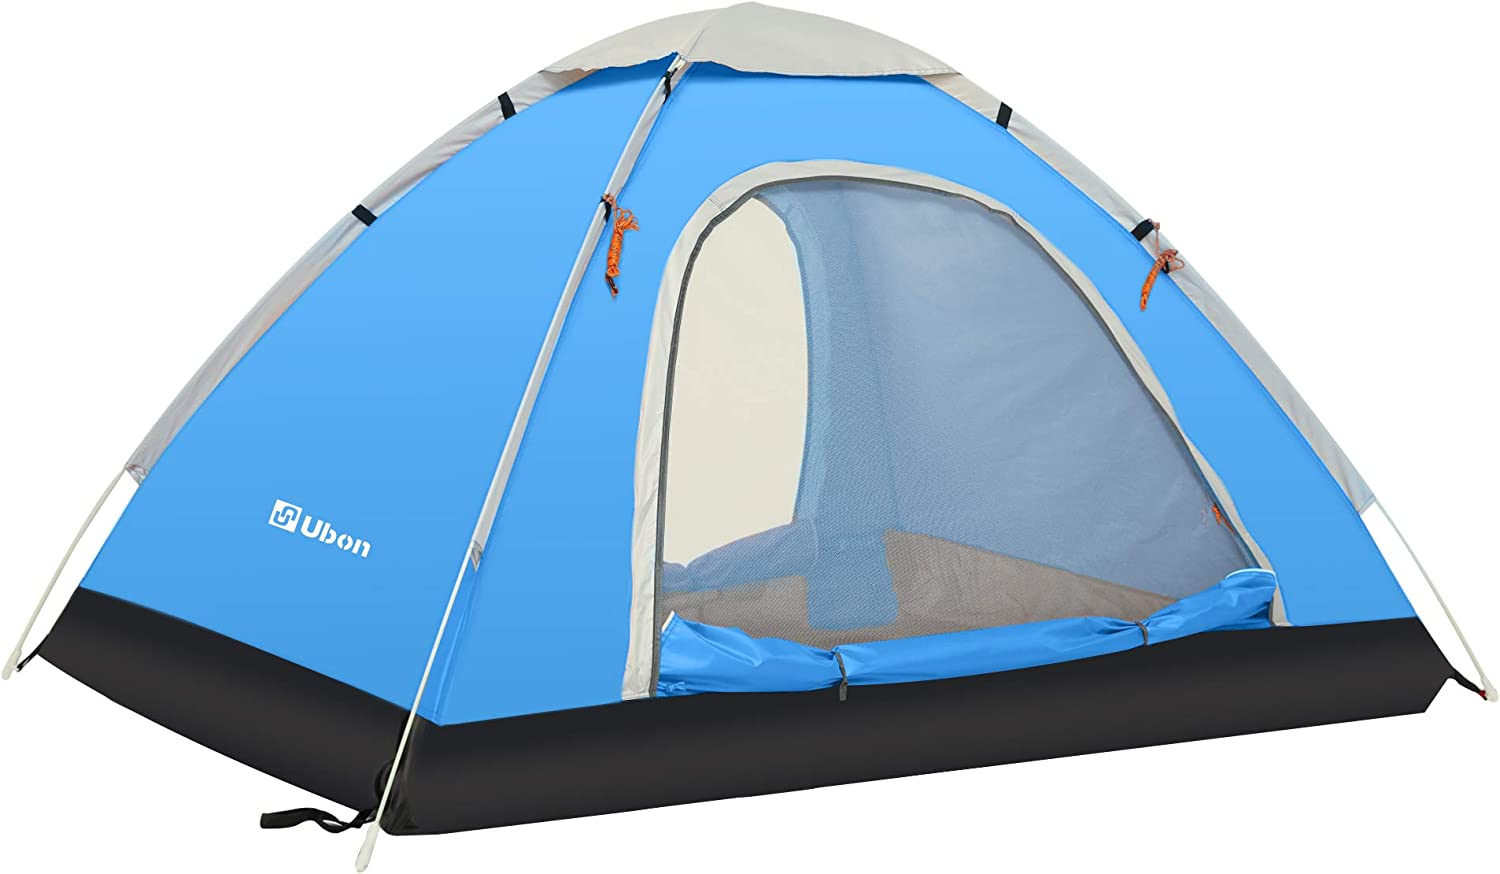 Ubon 2 3 Person Pop Up Tent Instant Tent Lightweight Backpacking Tent Camping Sports Outdoors